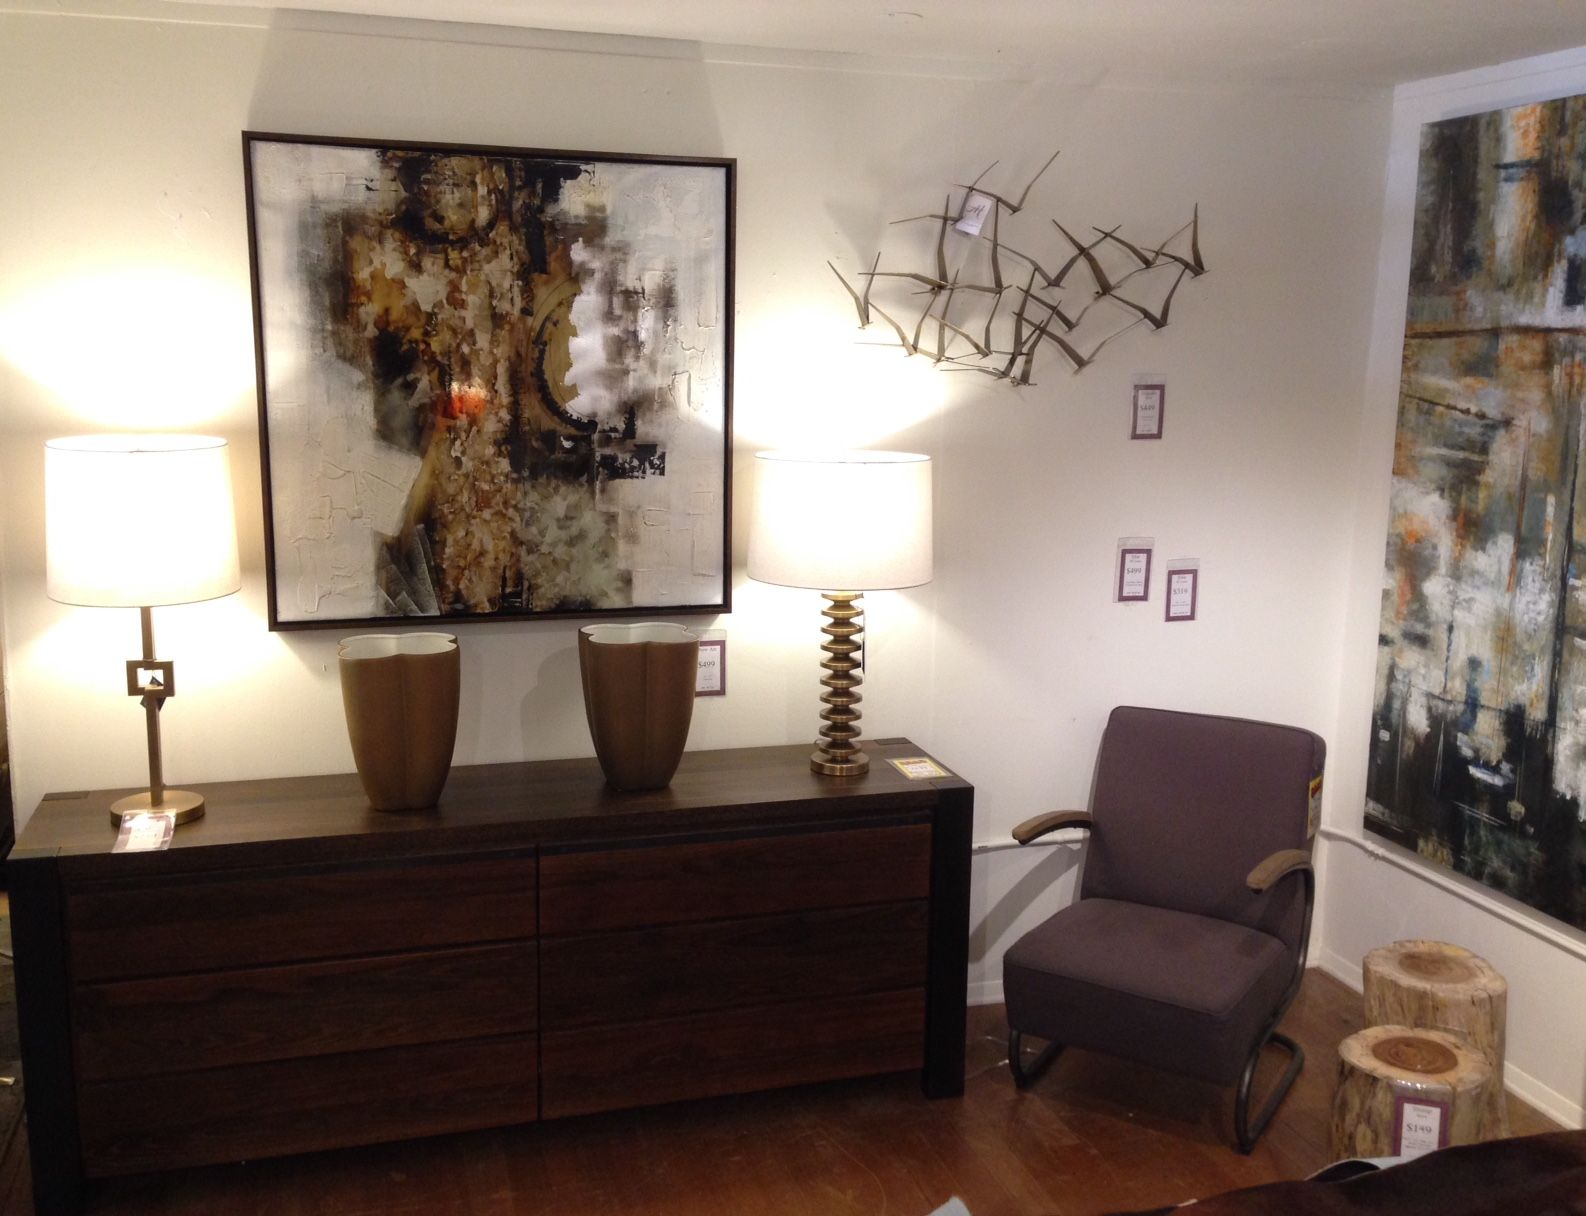 Lima dresser in seared oak miles club chair from four hands hands malvernweather Choice Image